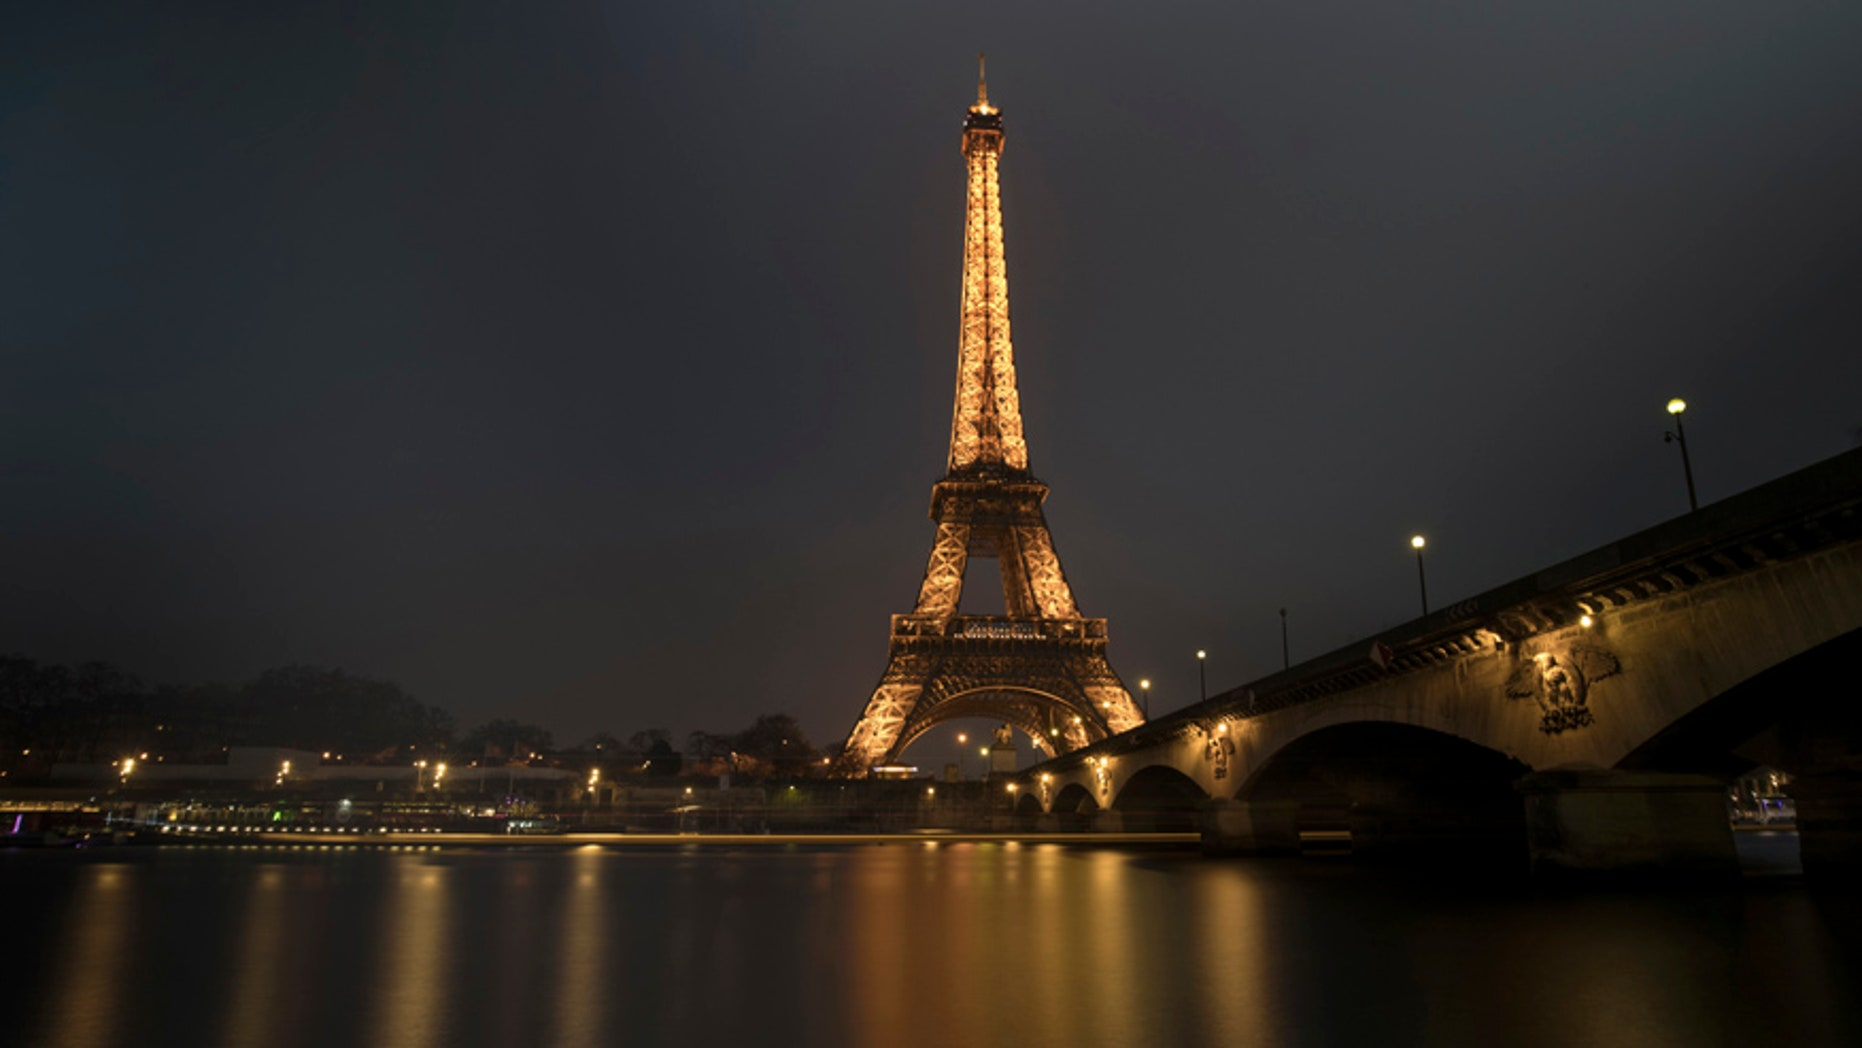 A streak of light from a passing boat is seen in this long time-exposure of the illuminated Eiffel Tower and the Seine River in Paris, France, January 17, 2017. REUTERS/Philippe Wojazer - RTSVY77